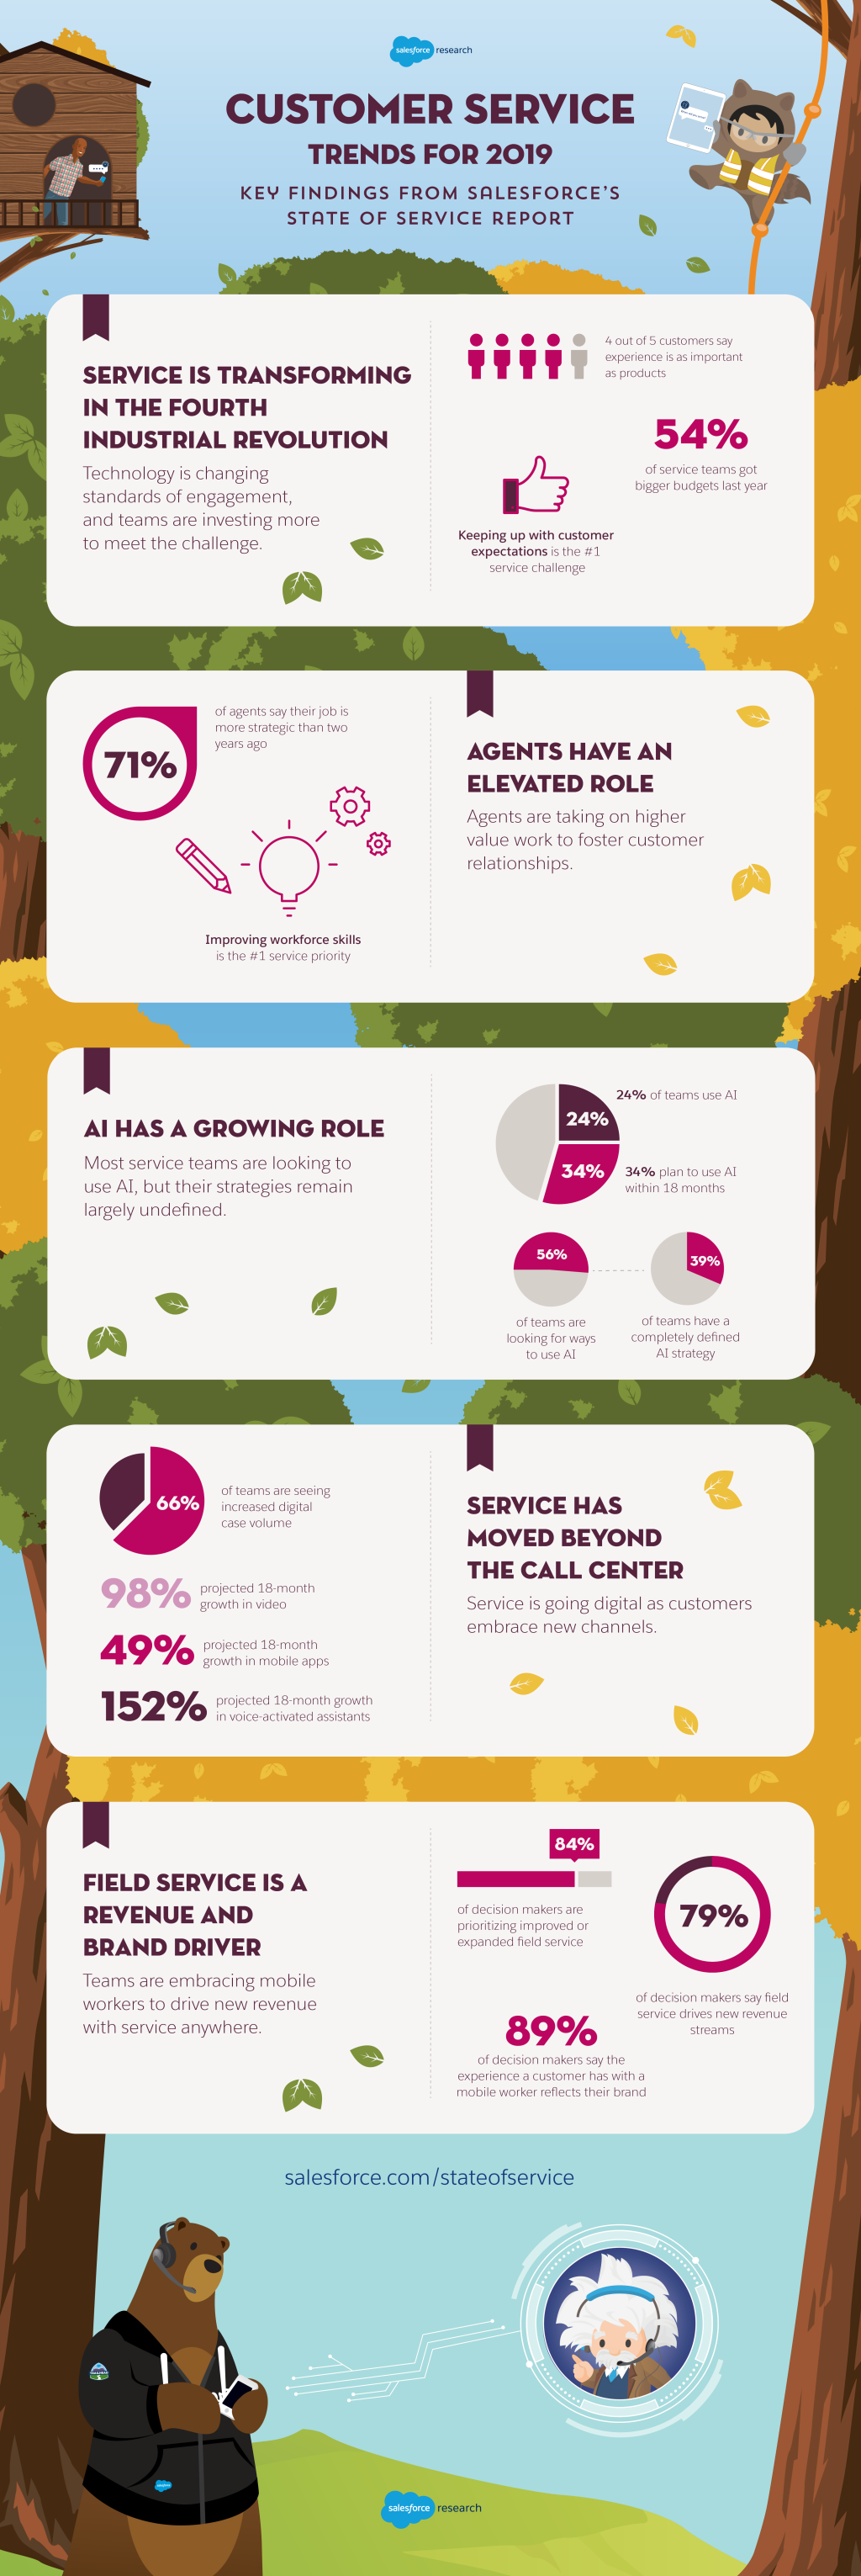 Infographics by Salesforce on Customer Service Trends Are Changing in 2019